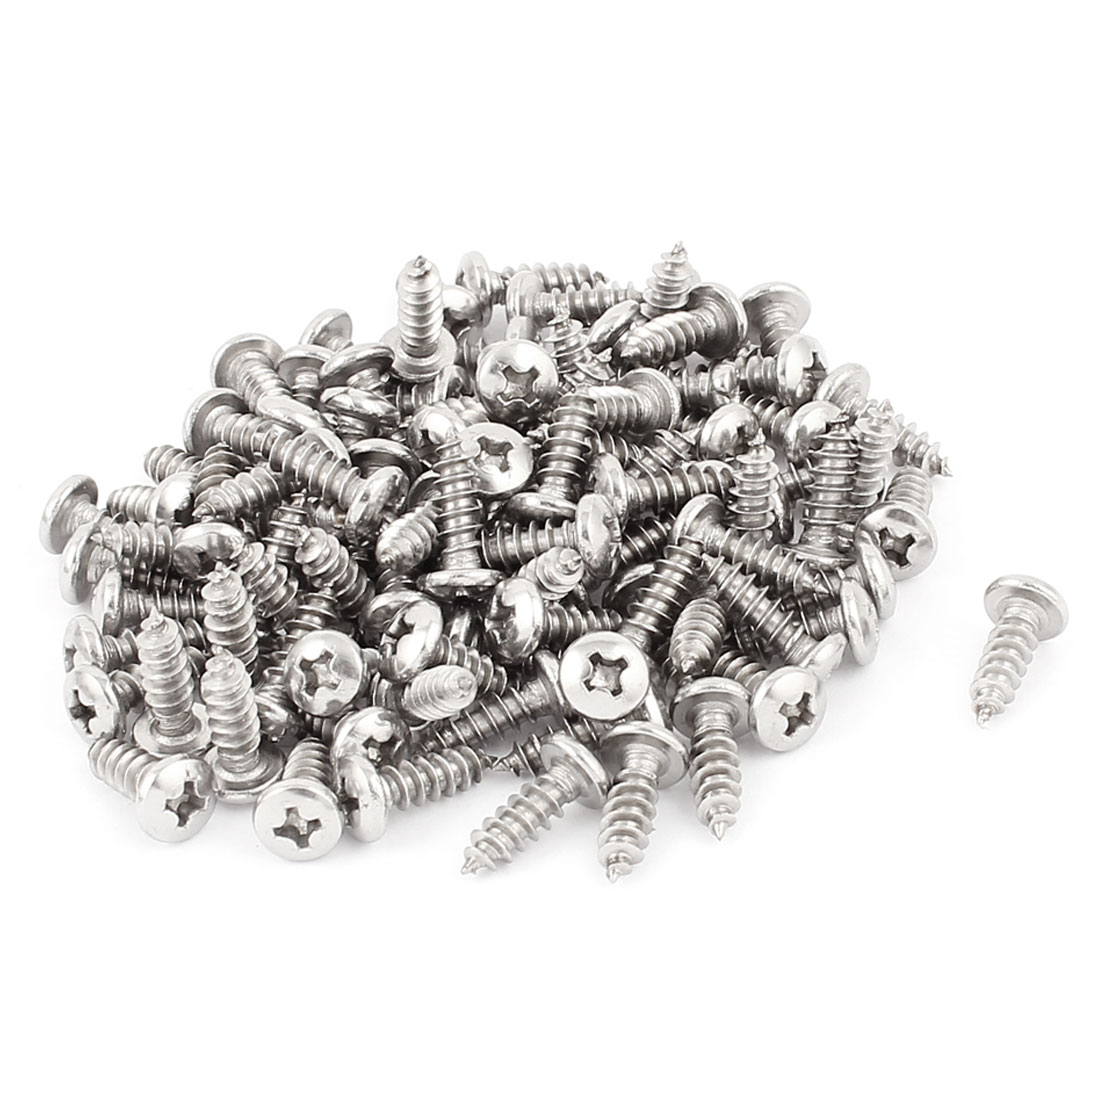 3.9mm x 13mm Phillips Cross Drive Pan Head Self Tapping Screw Fasteners Silver Tone 100 Pcs